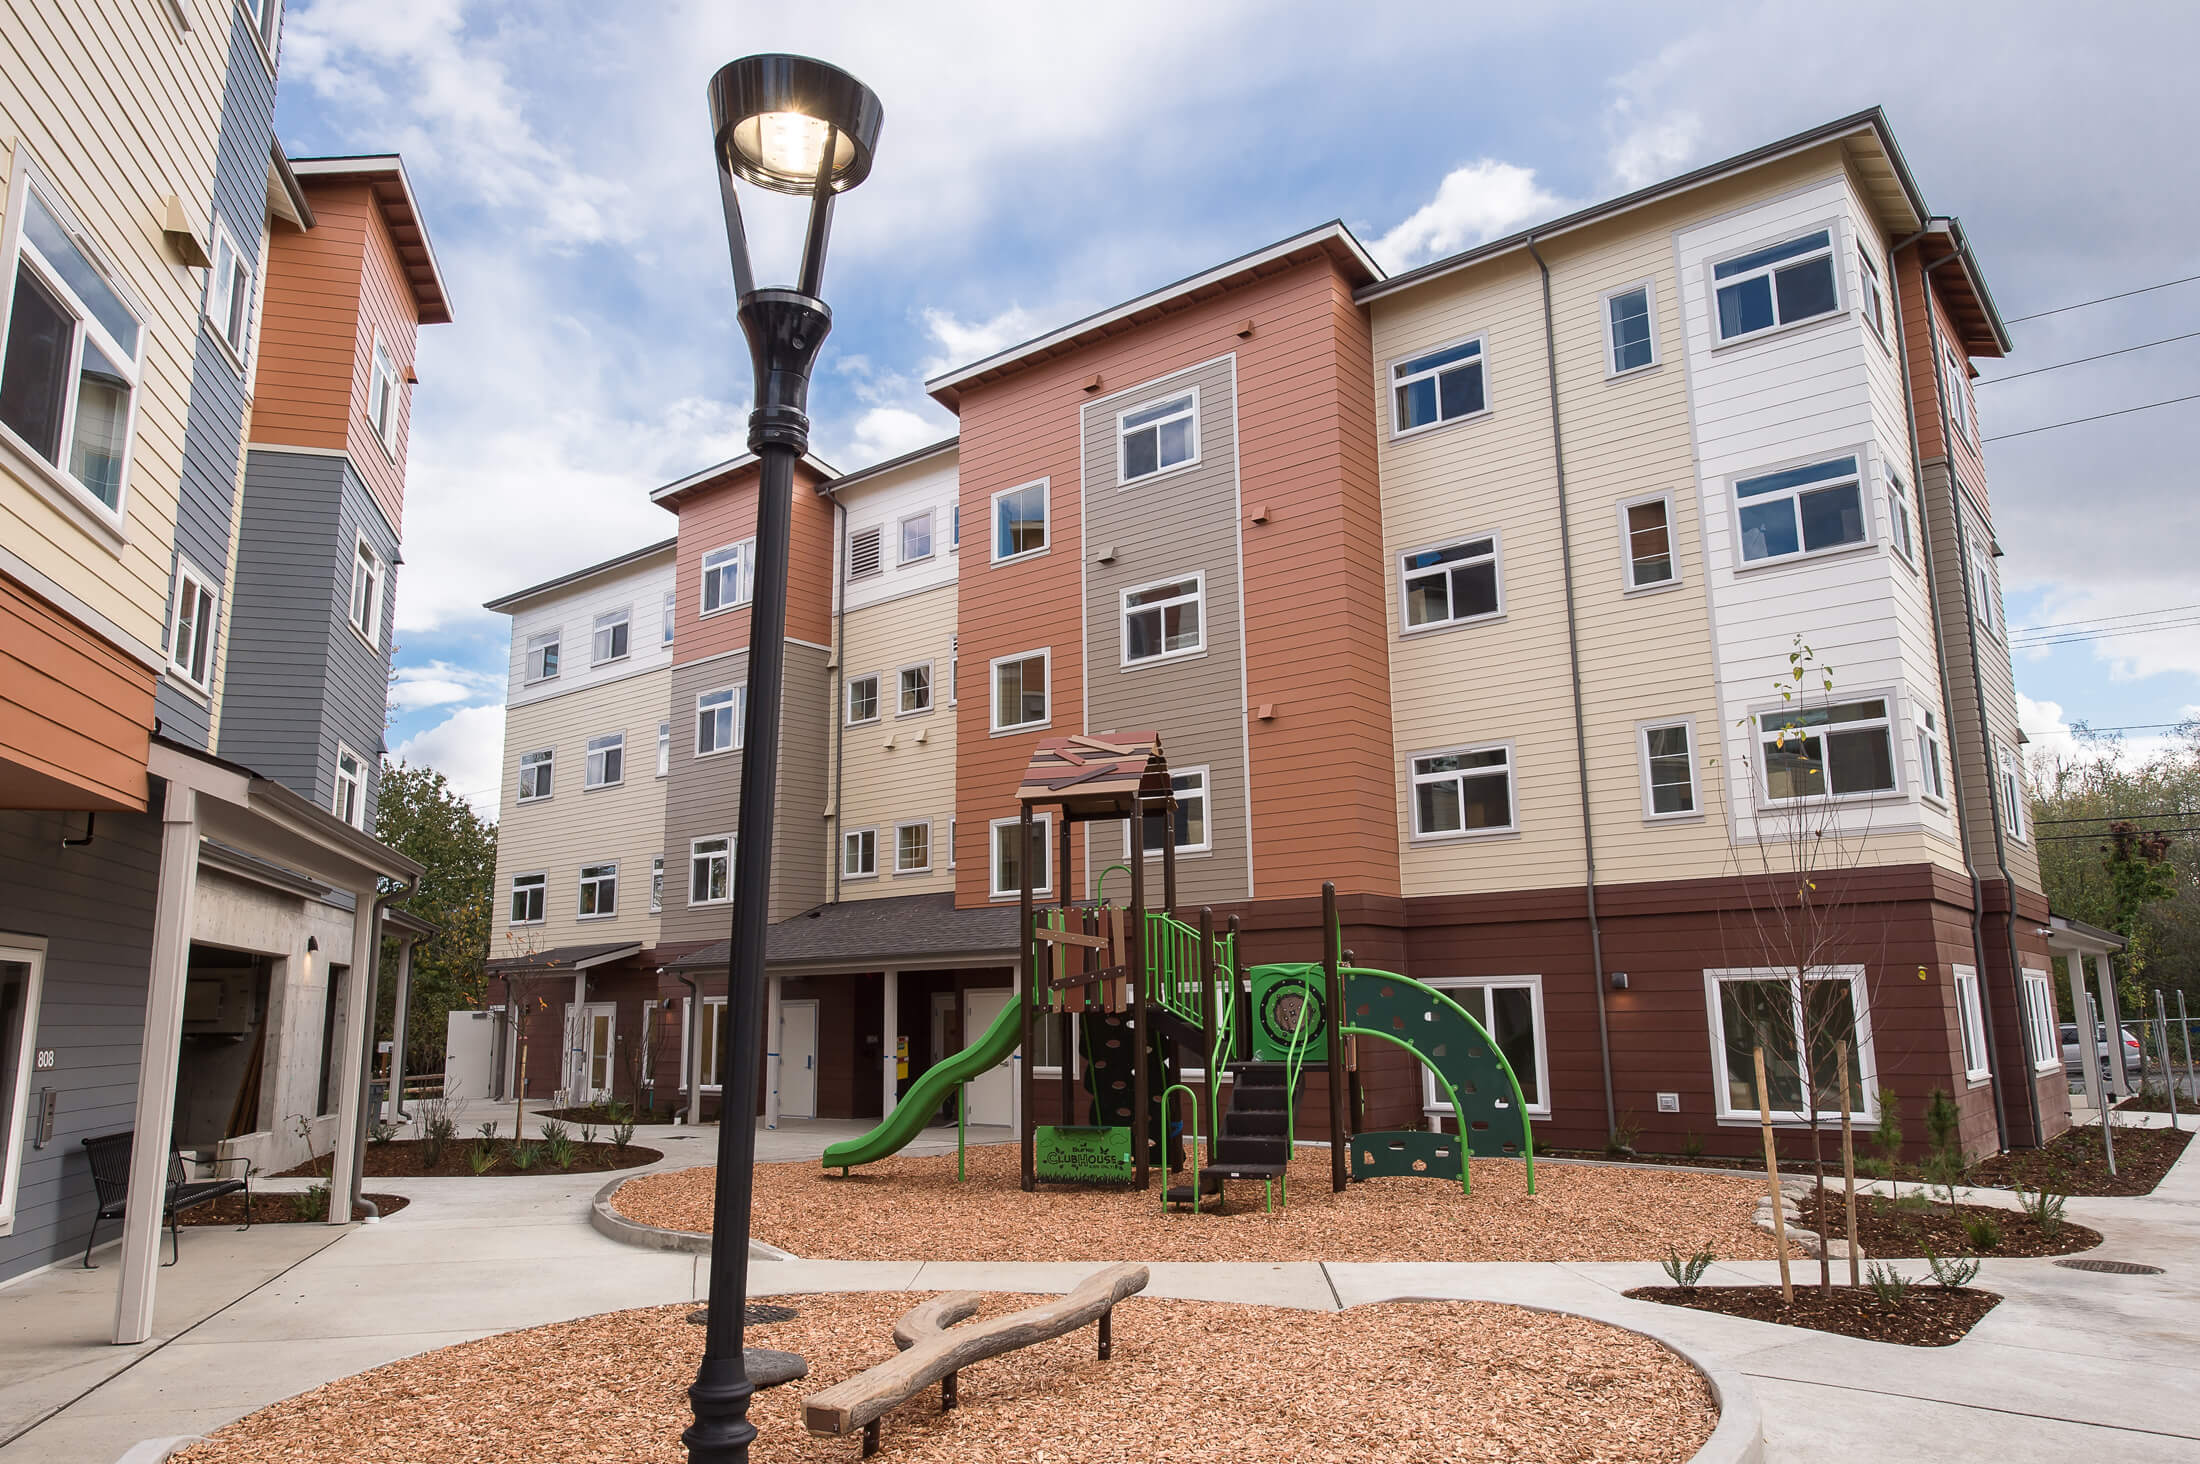 Expand Bakerview Family Housing Exterior